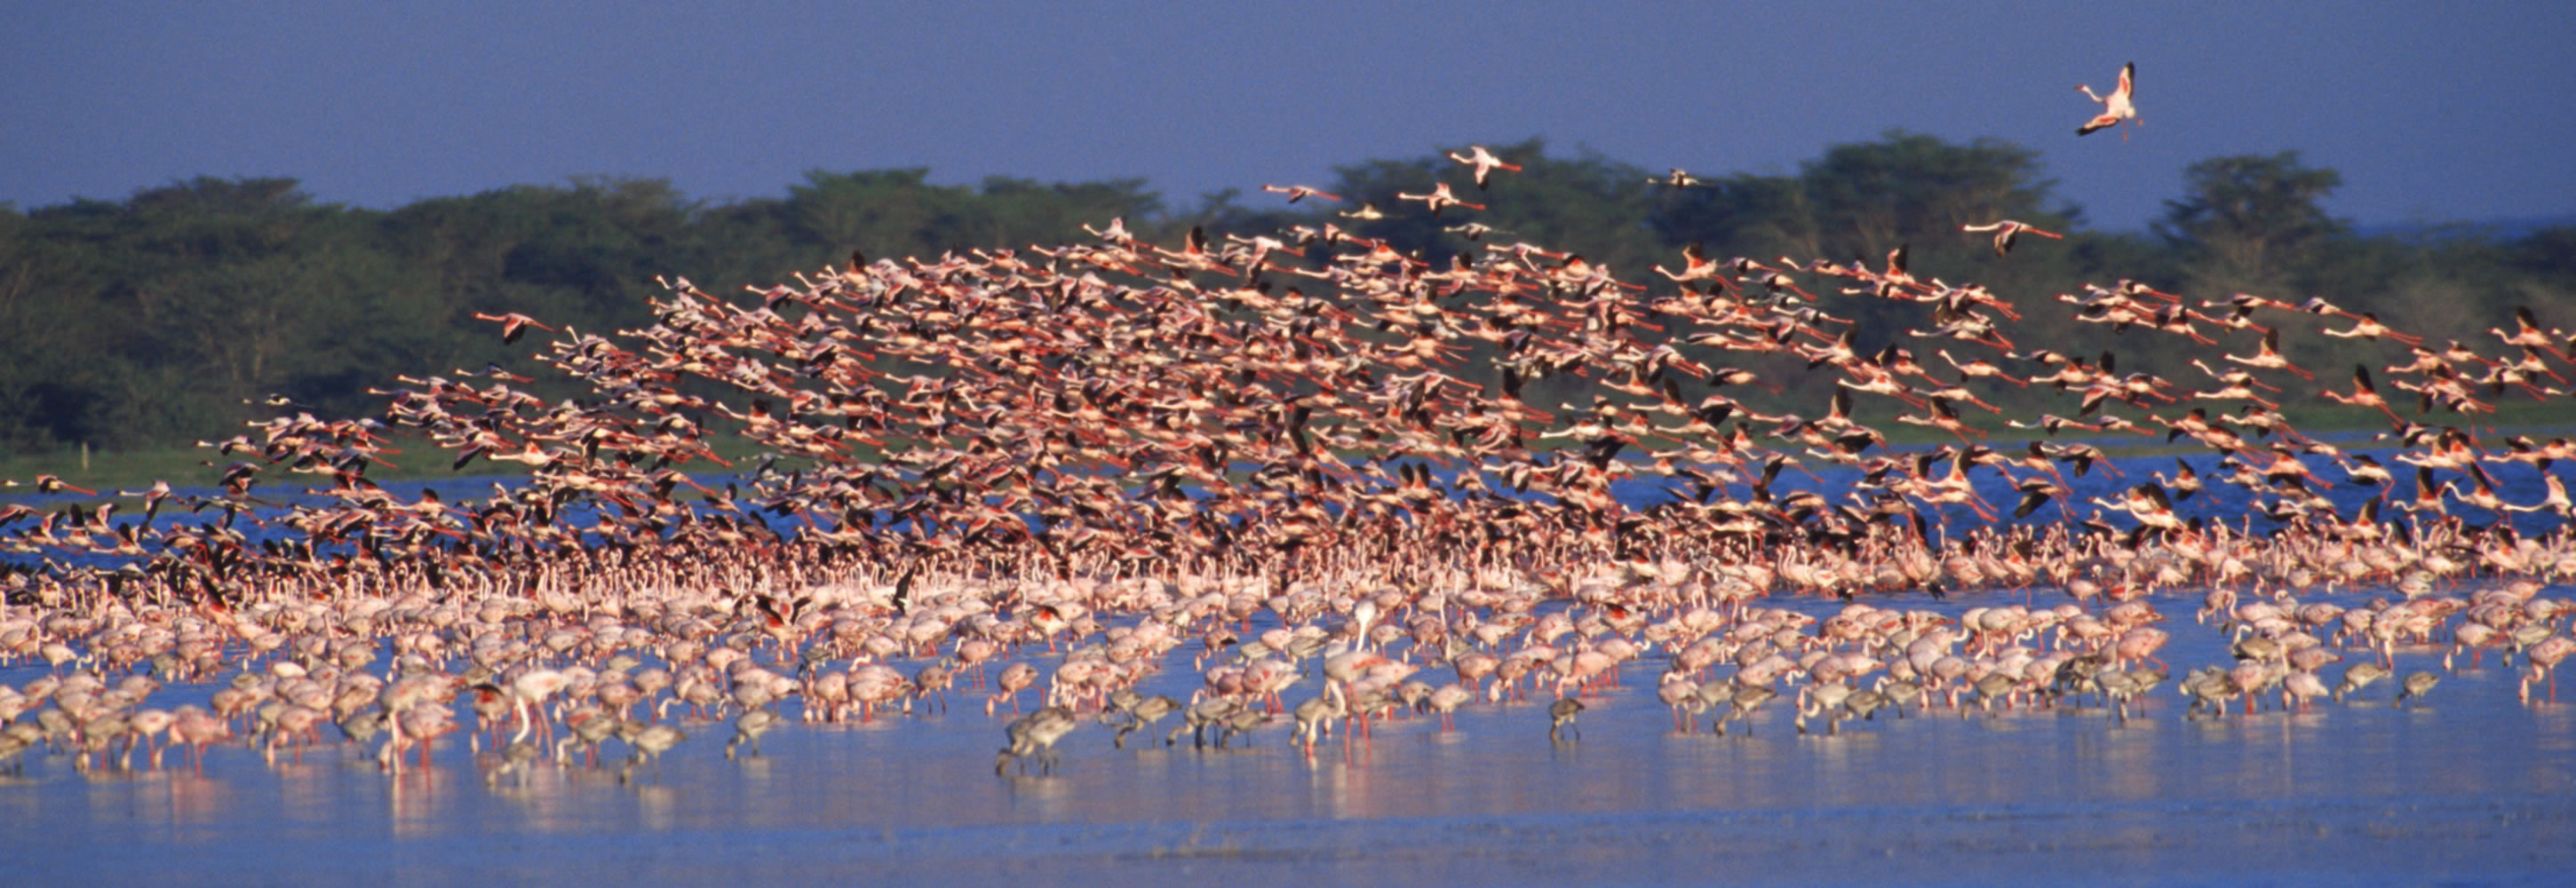 004-flamingoes-lake-nakuru